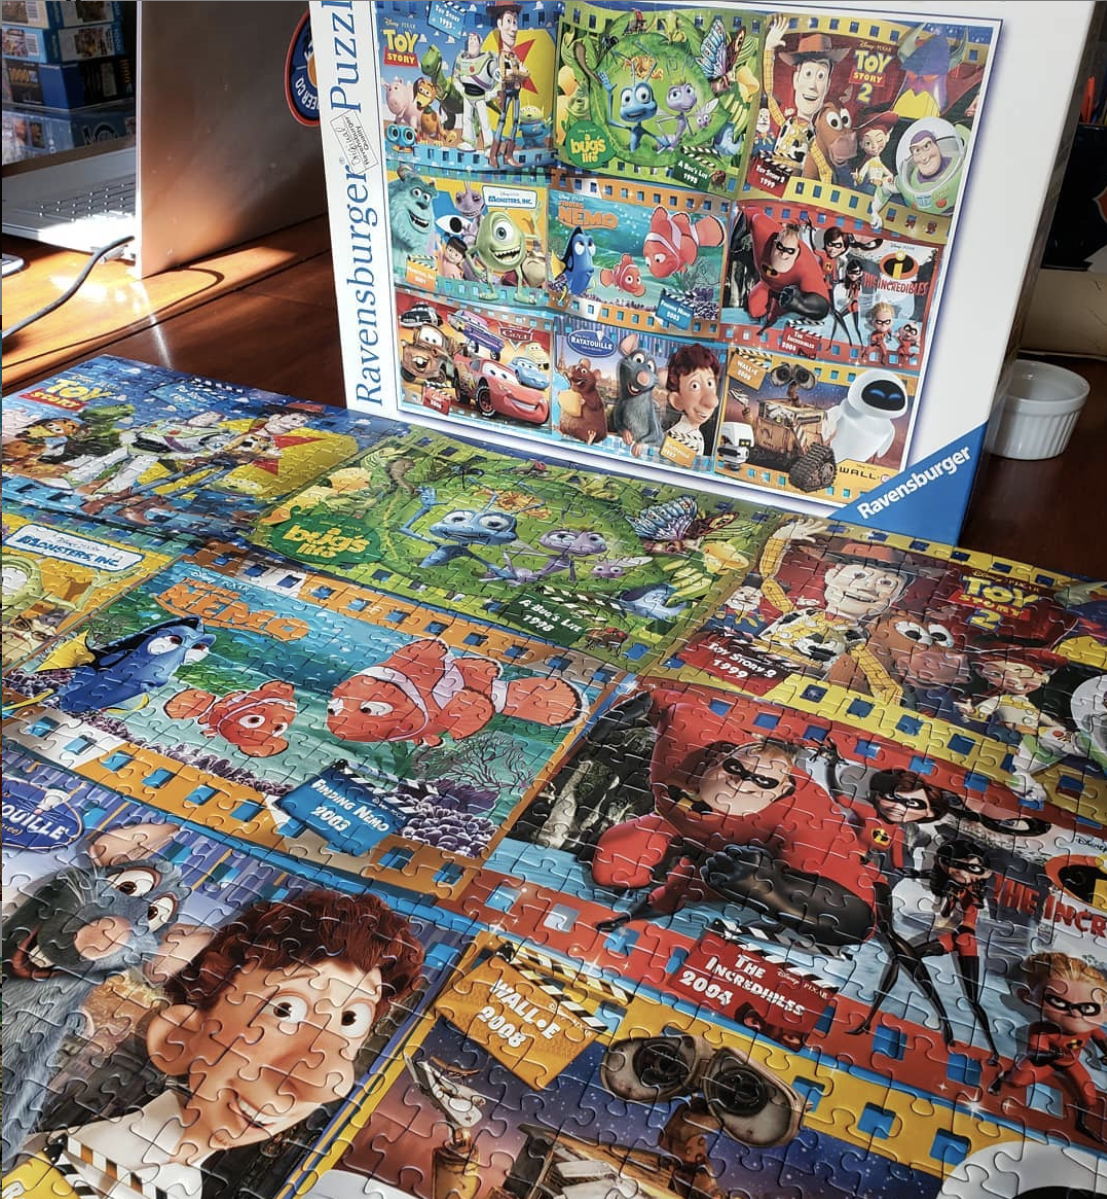 a completed Ravensburger puzzle